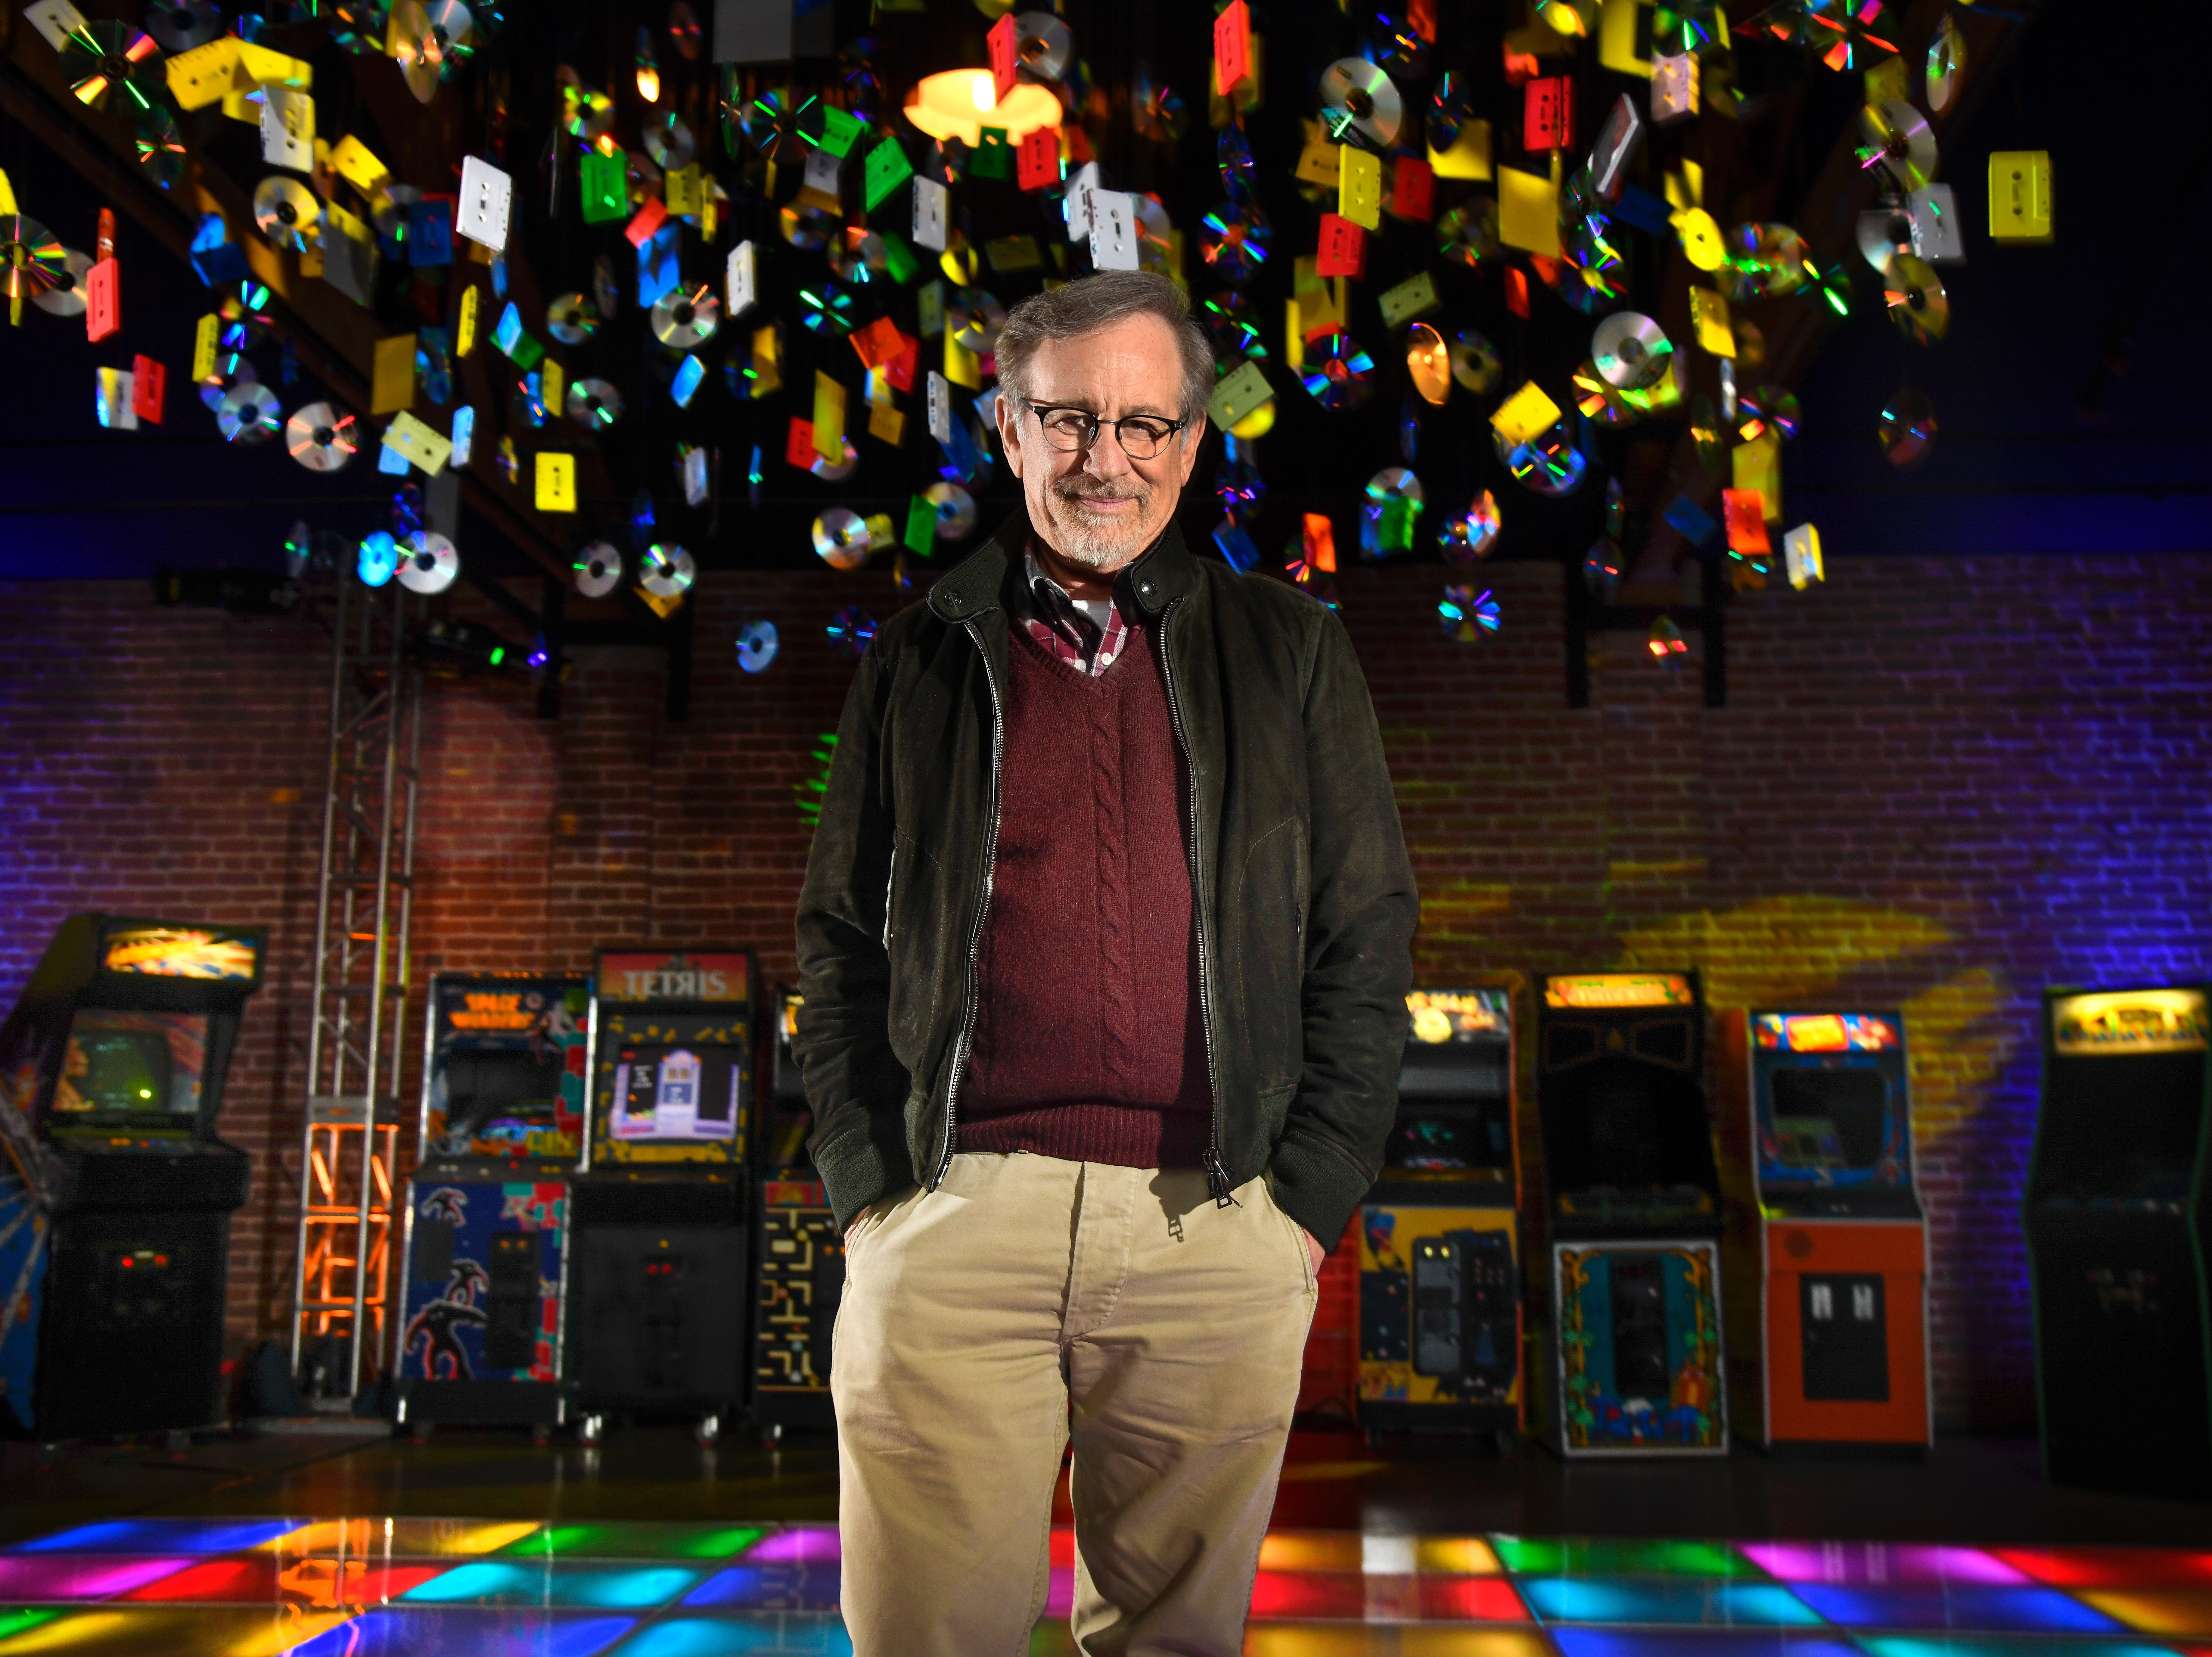 """March 15, 2018: Steven Spielberg poses for a photo during promoting for his film, """"Ready Player One."""""""